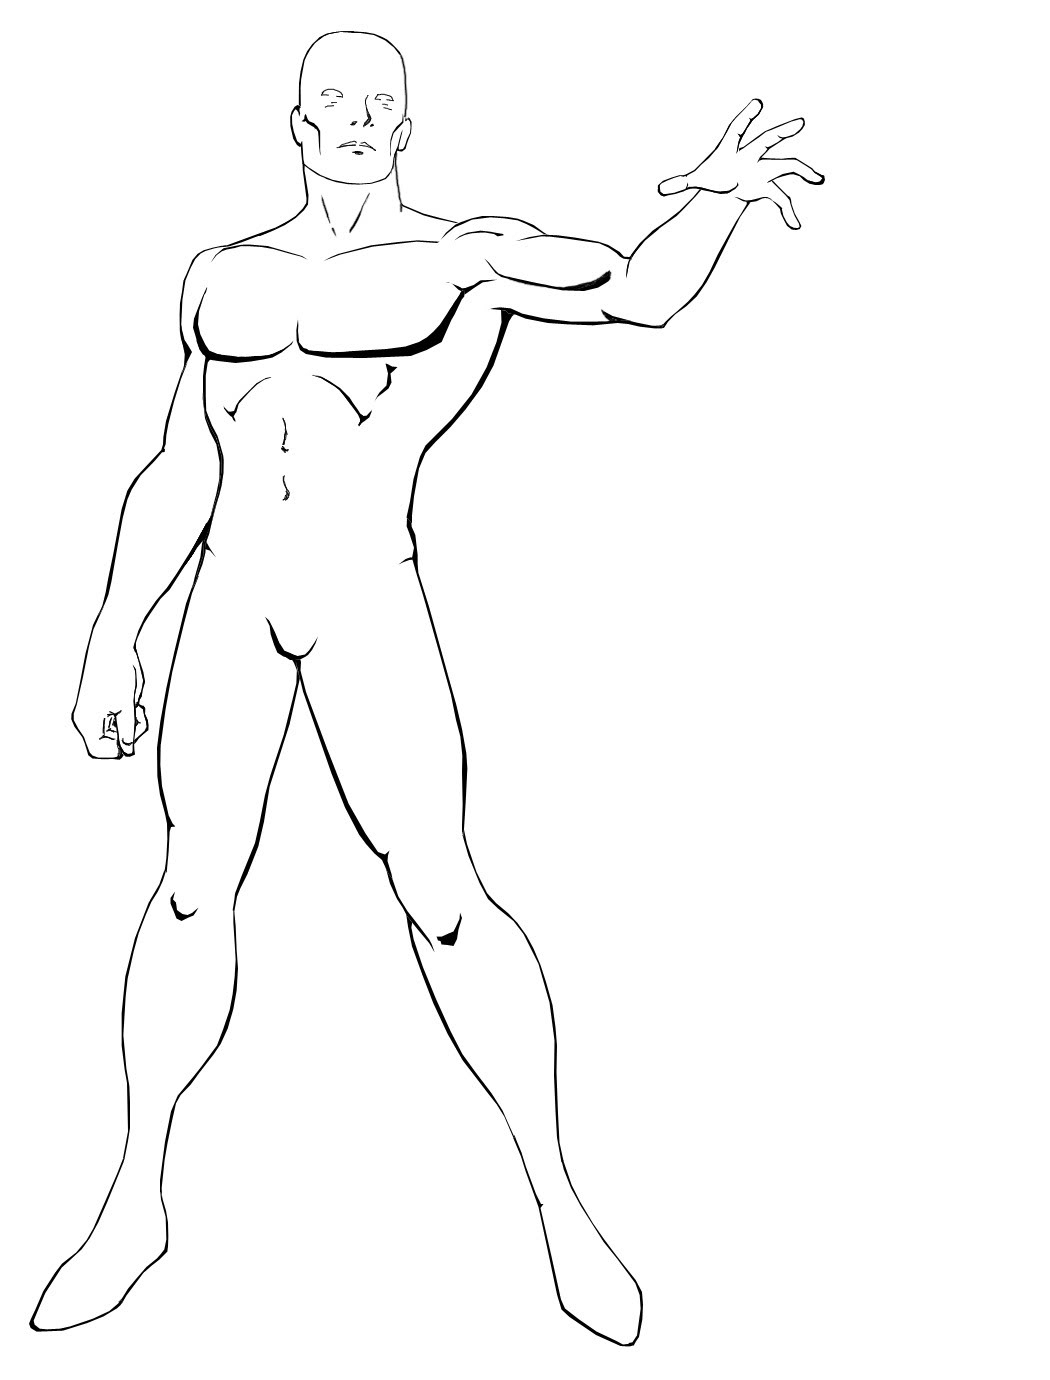 1050x1380 Body Outline Drawing Outline Drawing Of Human Body Character